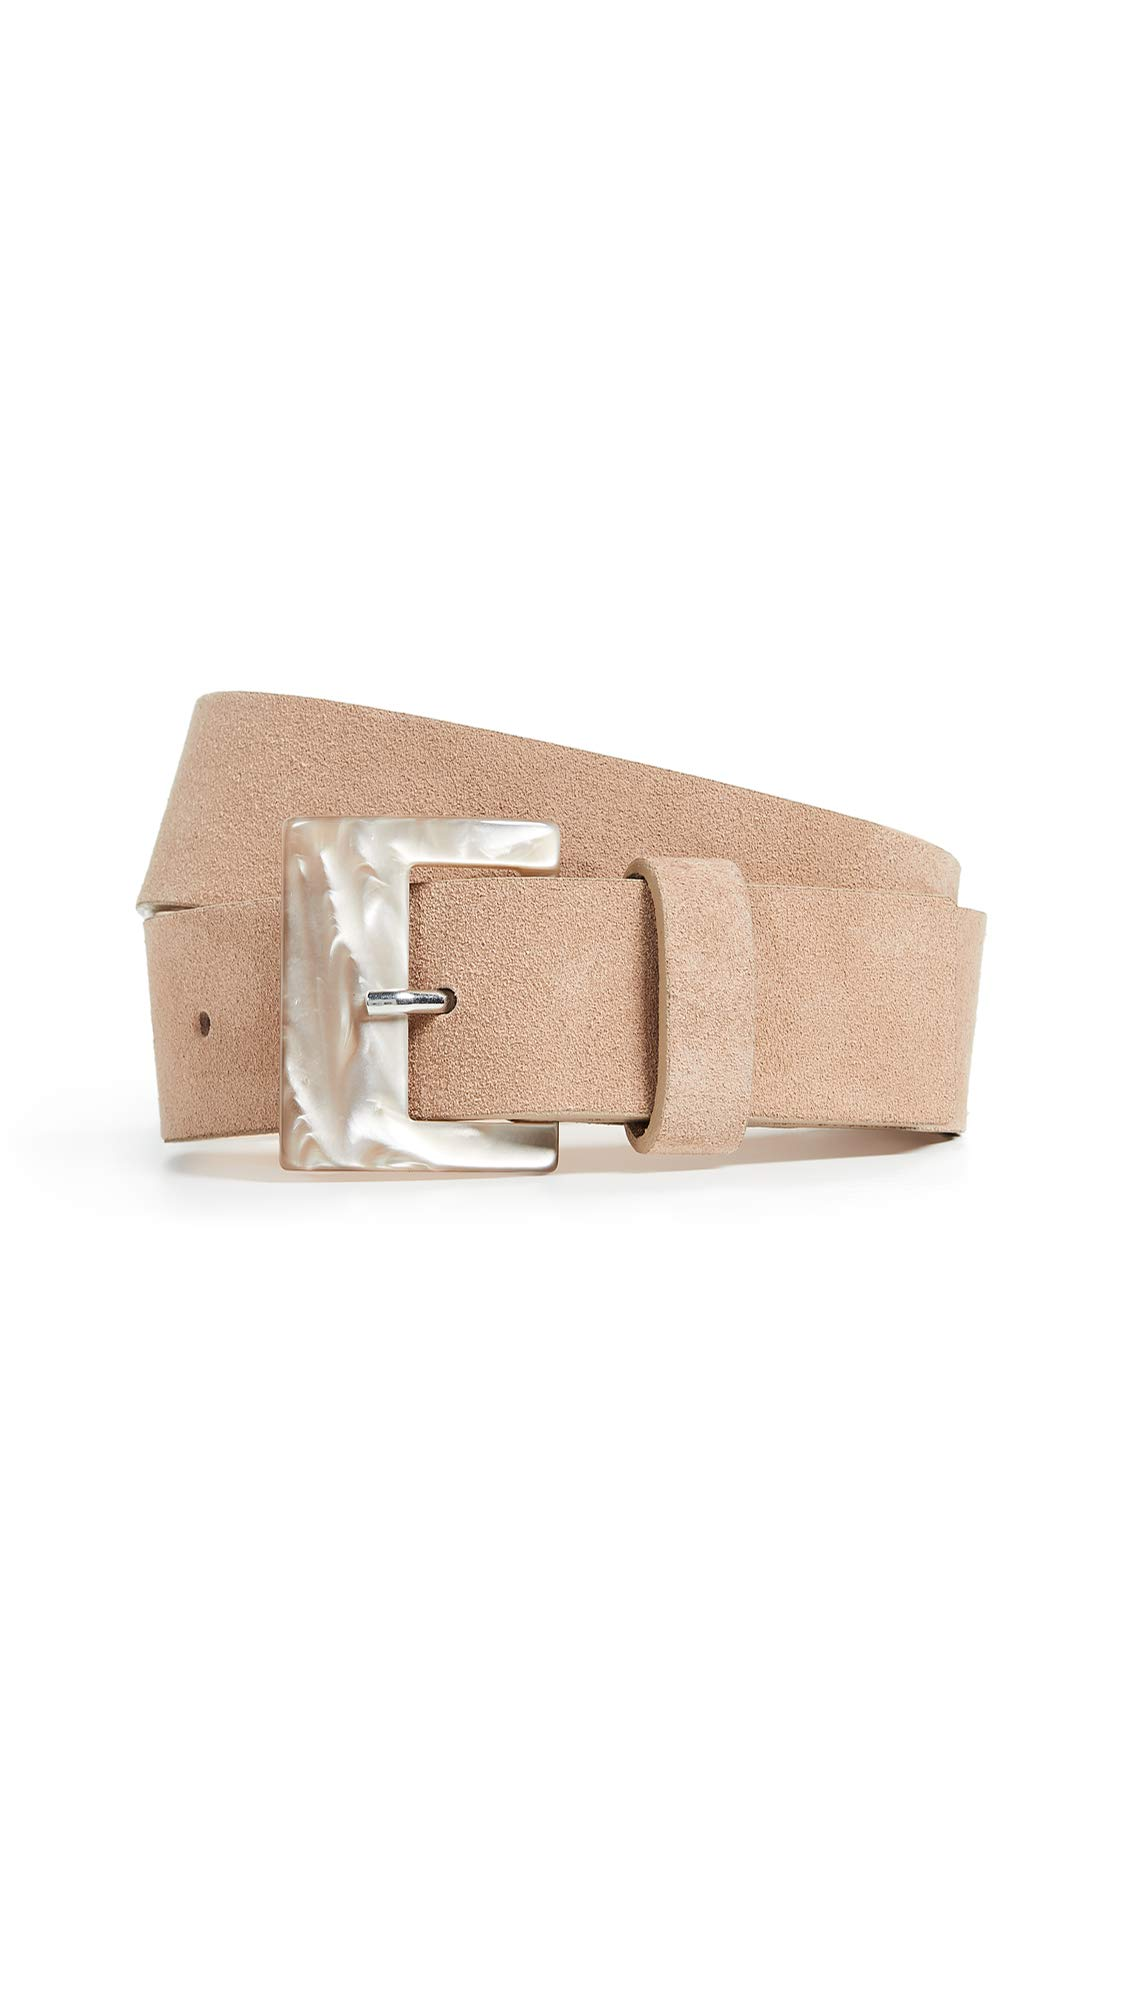 B-Low The Belt Women's Stassi Suede Belt, Sand, Tan, Small